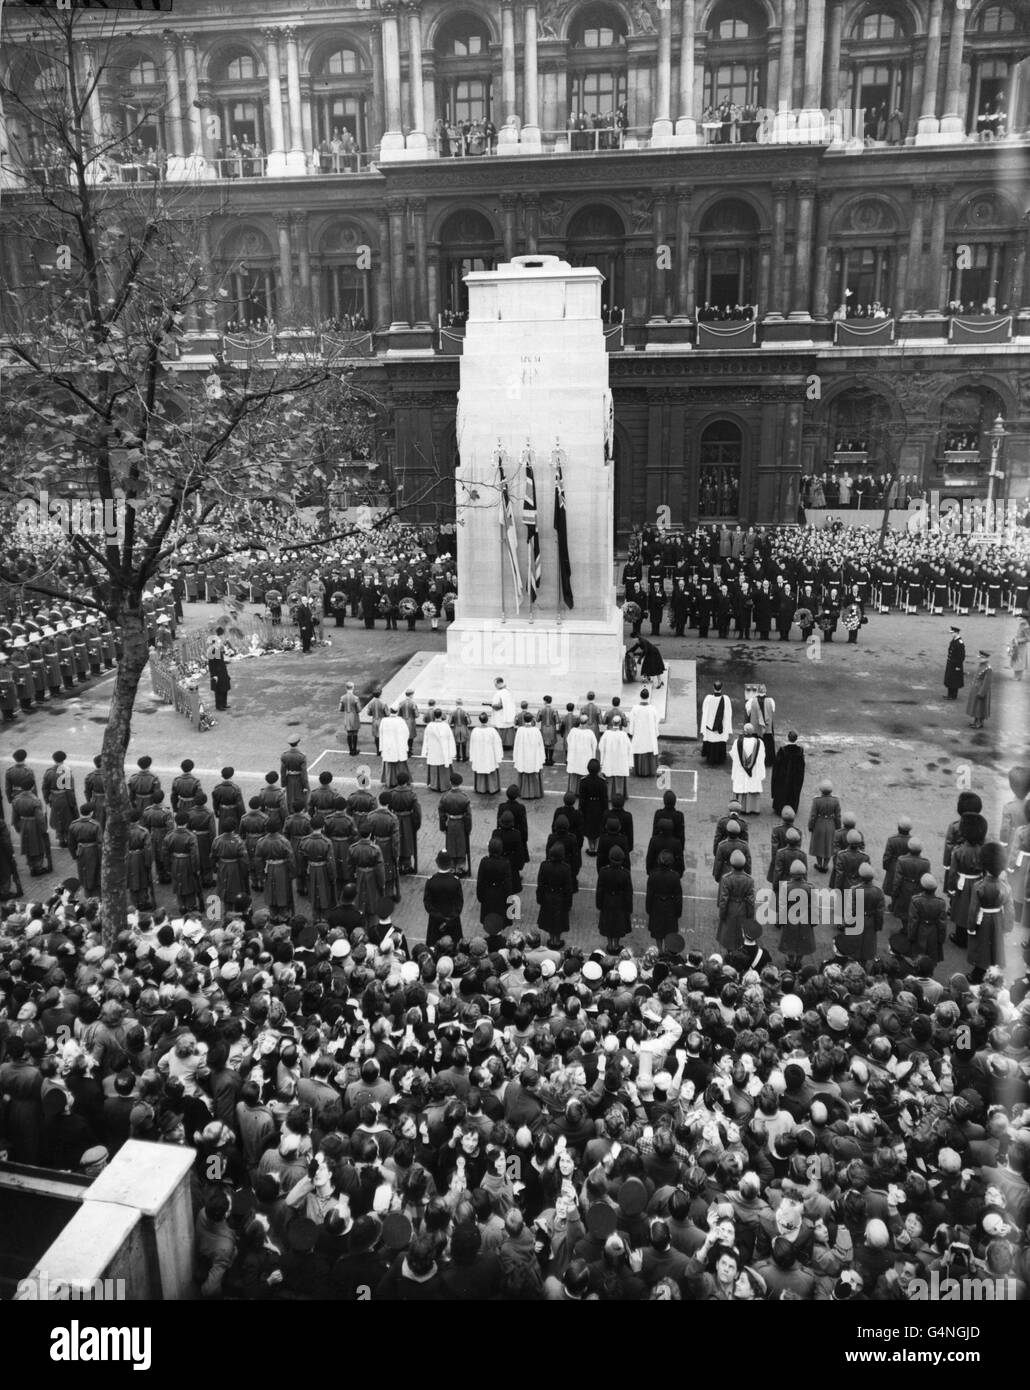 Royalty - Remembrance Sunday - Cenotaph, Whitehall, London - Stock Image